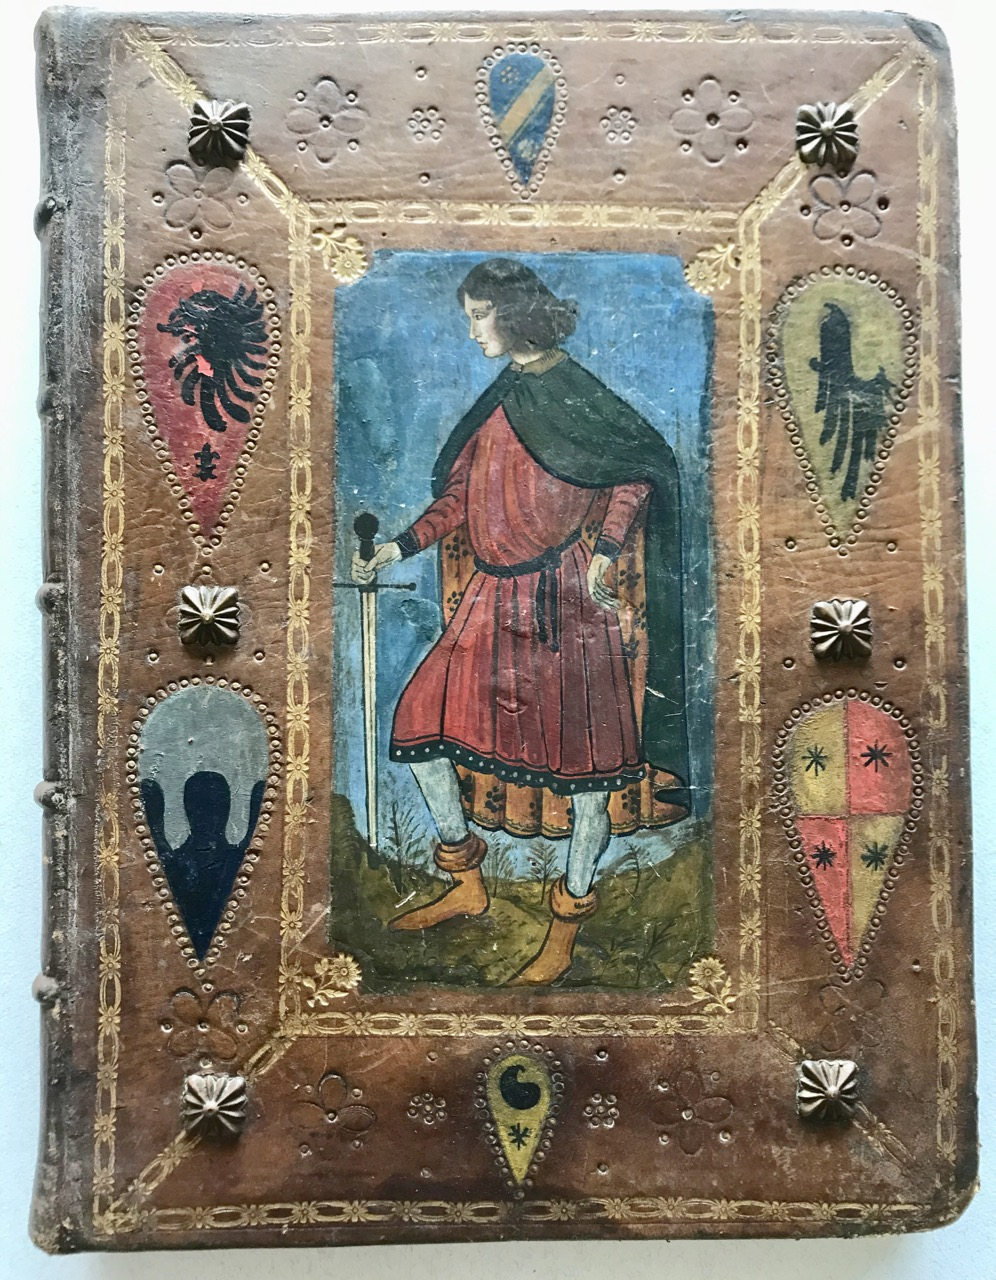 Image for 19th century hand-painted leather binding / journal or ledger.